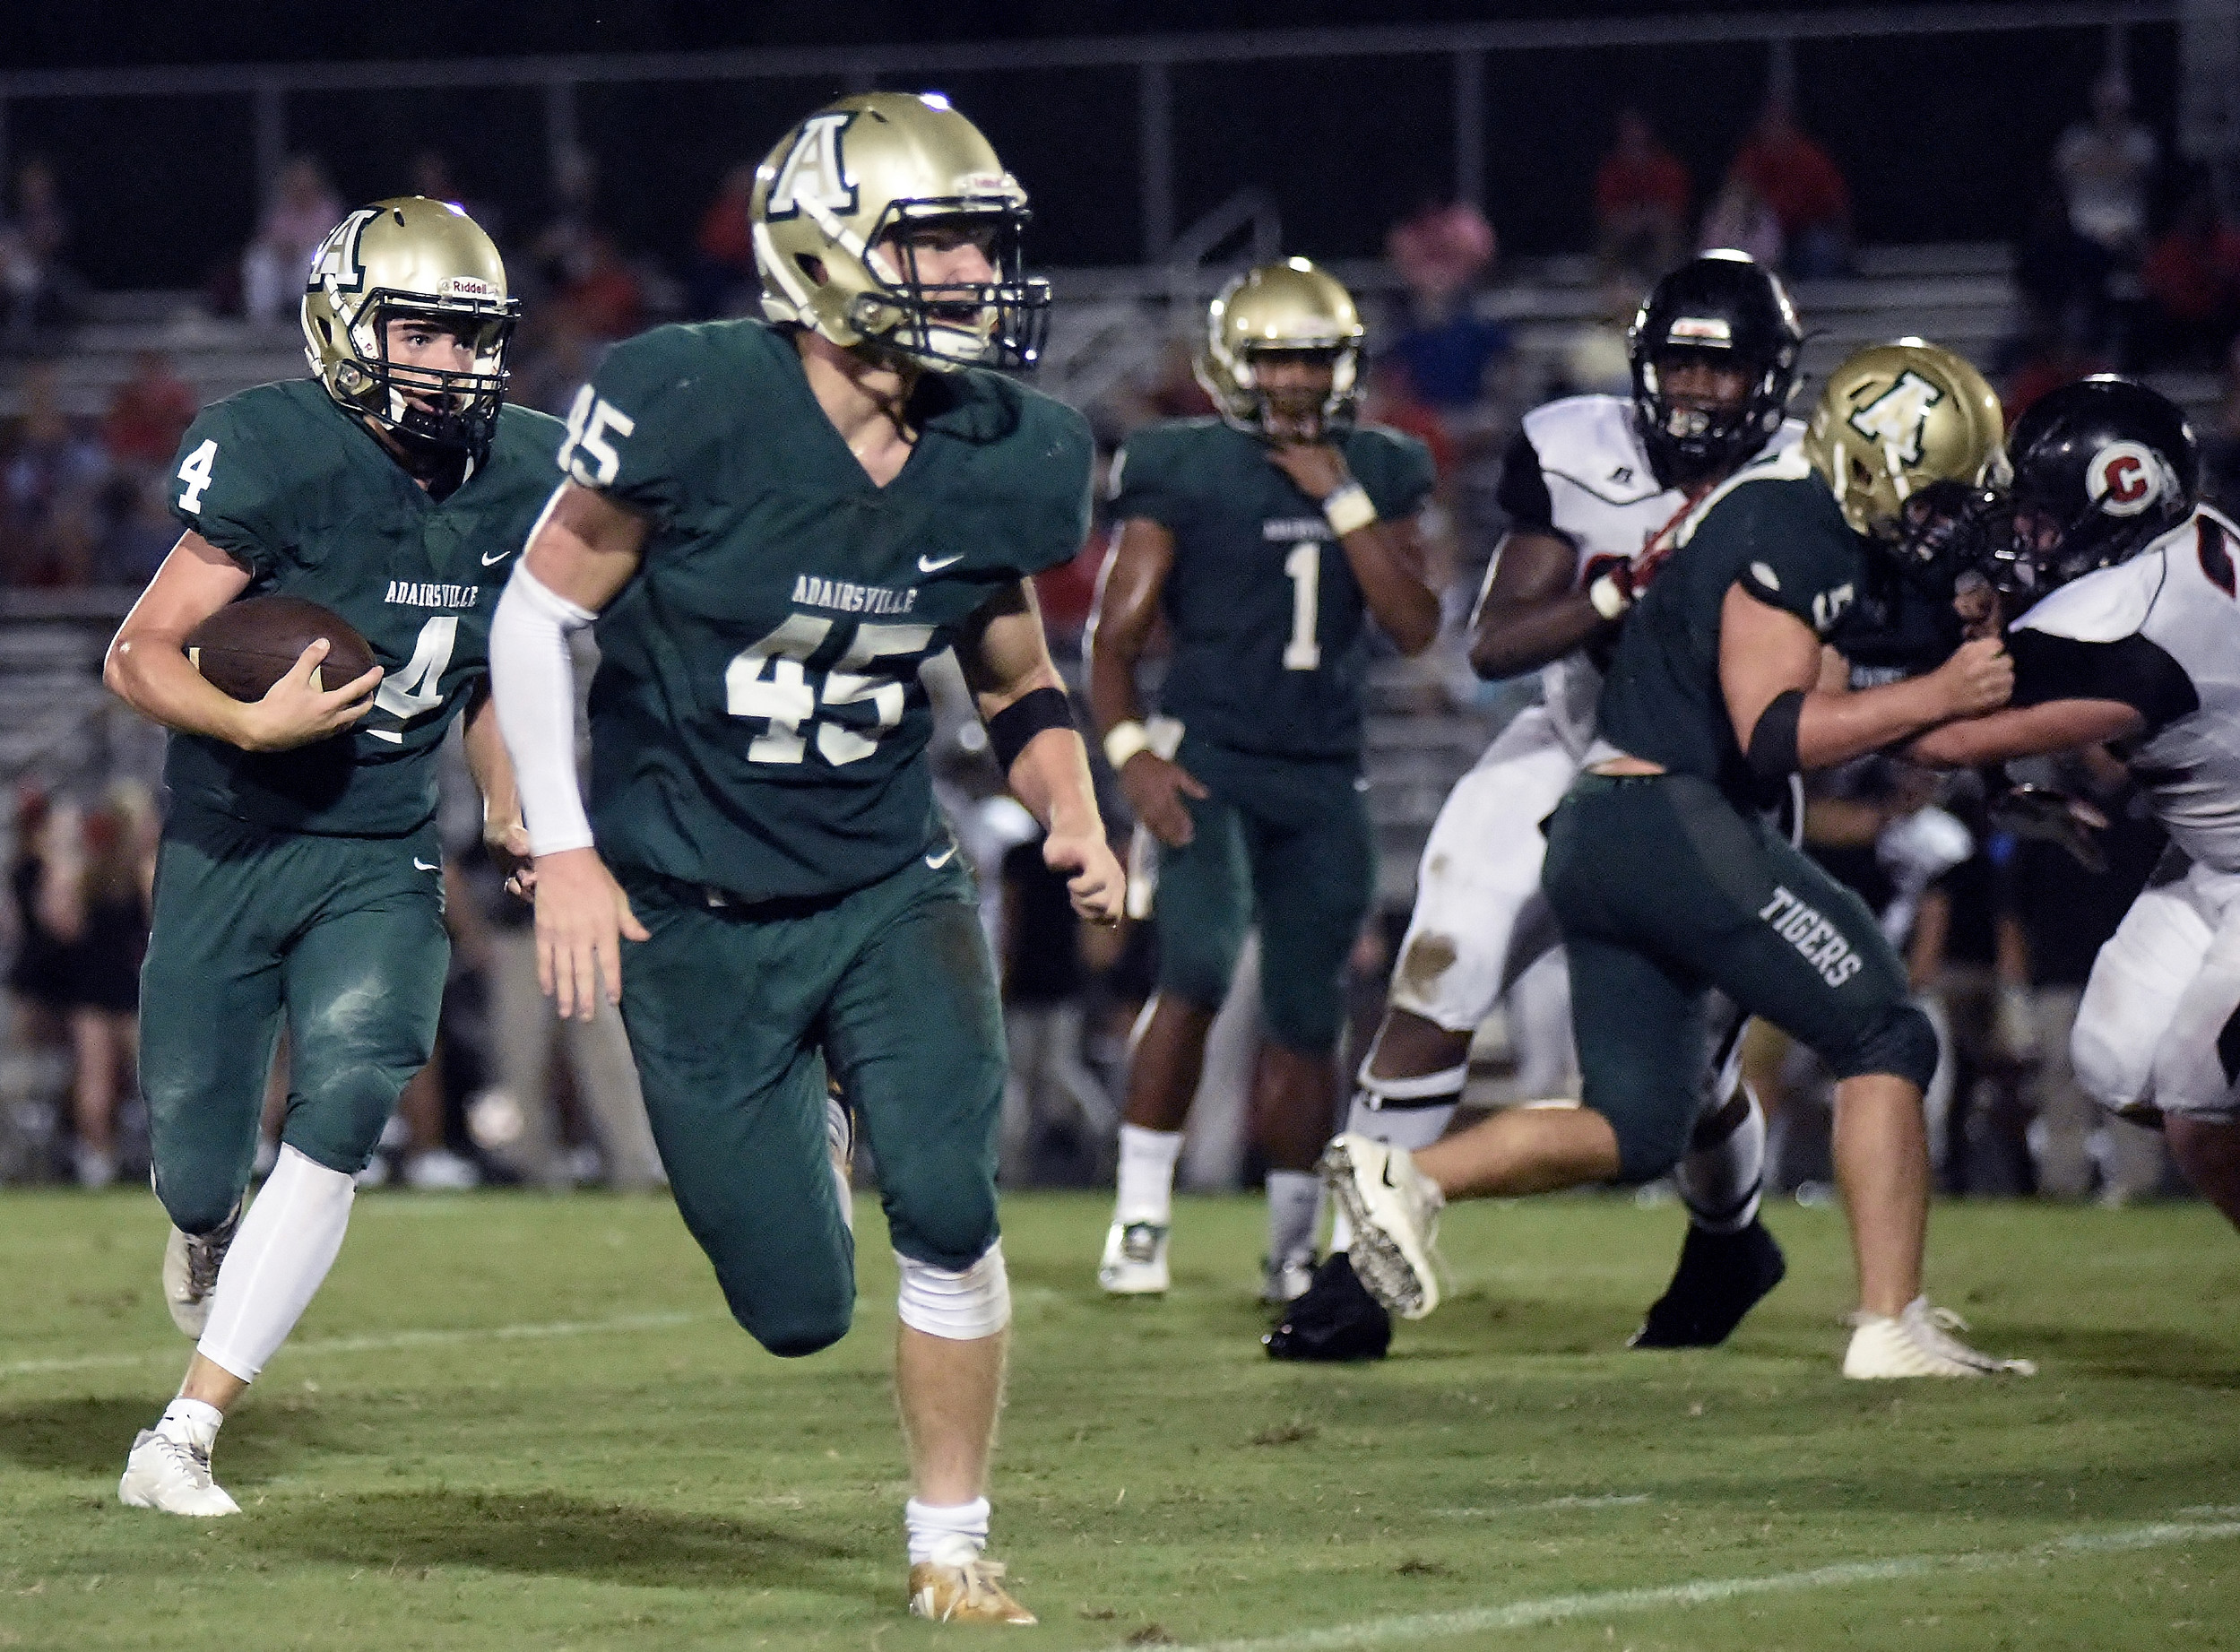 Adairsville sophomore Conner Crunkleton (4) carries the ball around the outside of the Chattooga defense, as Landon Ayers (45) looks to block and Mason Boswell (1) looks on.